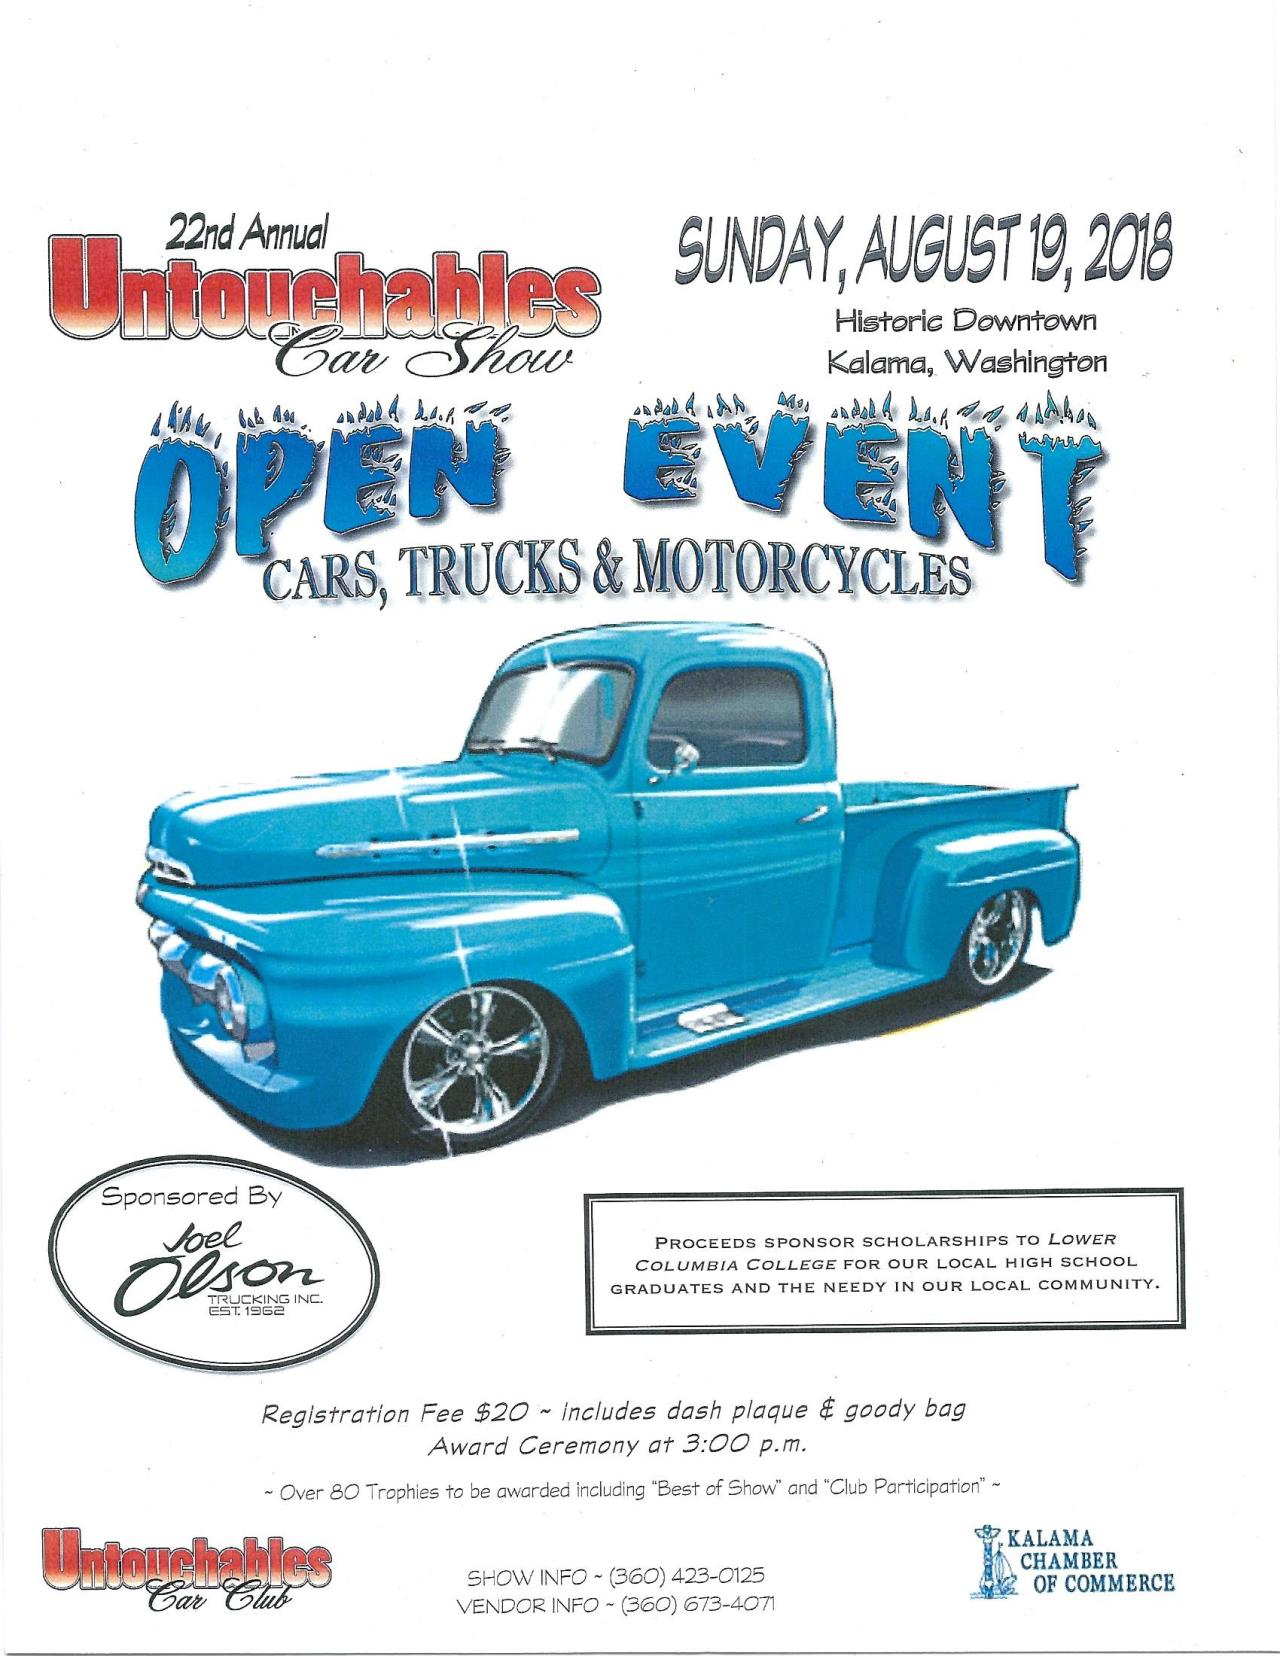 City Of Kalama Calendar Month View Annual Untouchables Car Show - Car show calendar